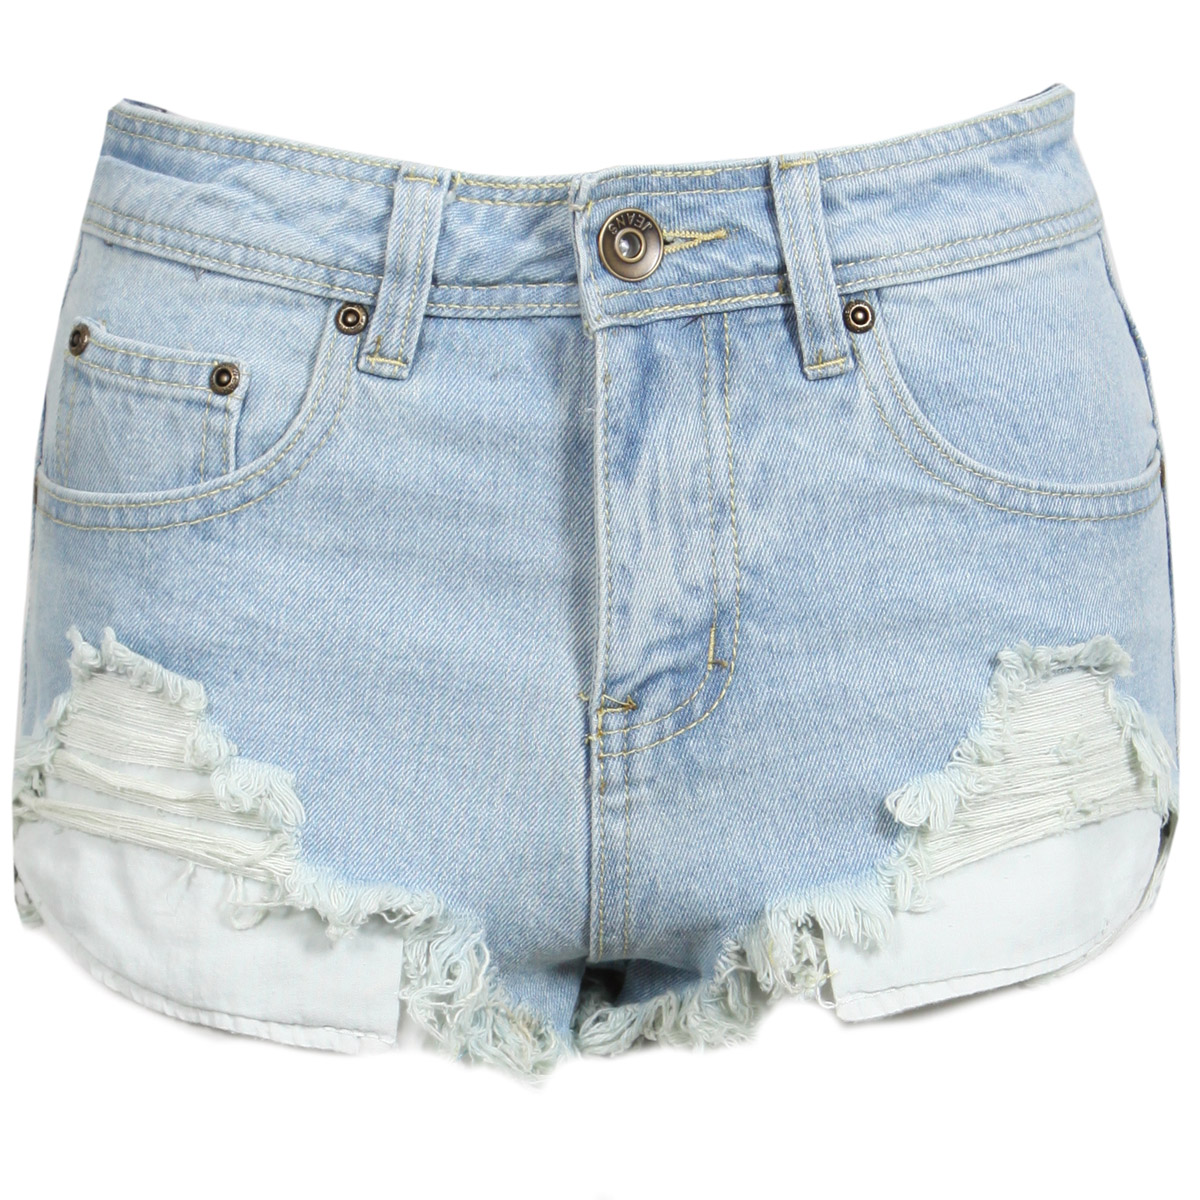 NEW-WOMENS-LIGHT-BLUE-DENIM-DISTRESSED-SHORTS-HOT-PANTS-FRAYED-HEM-LADIES-6-14